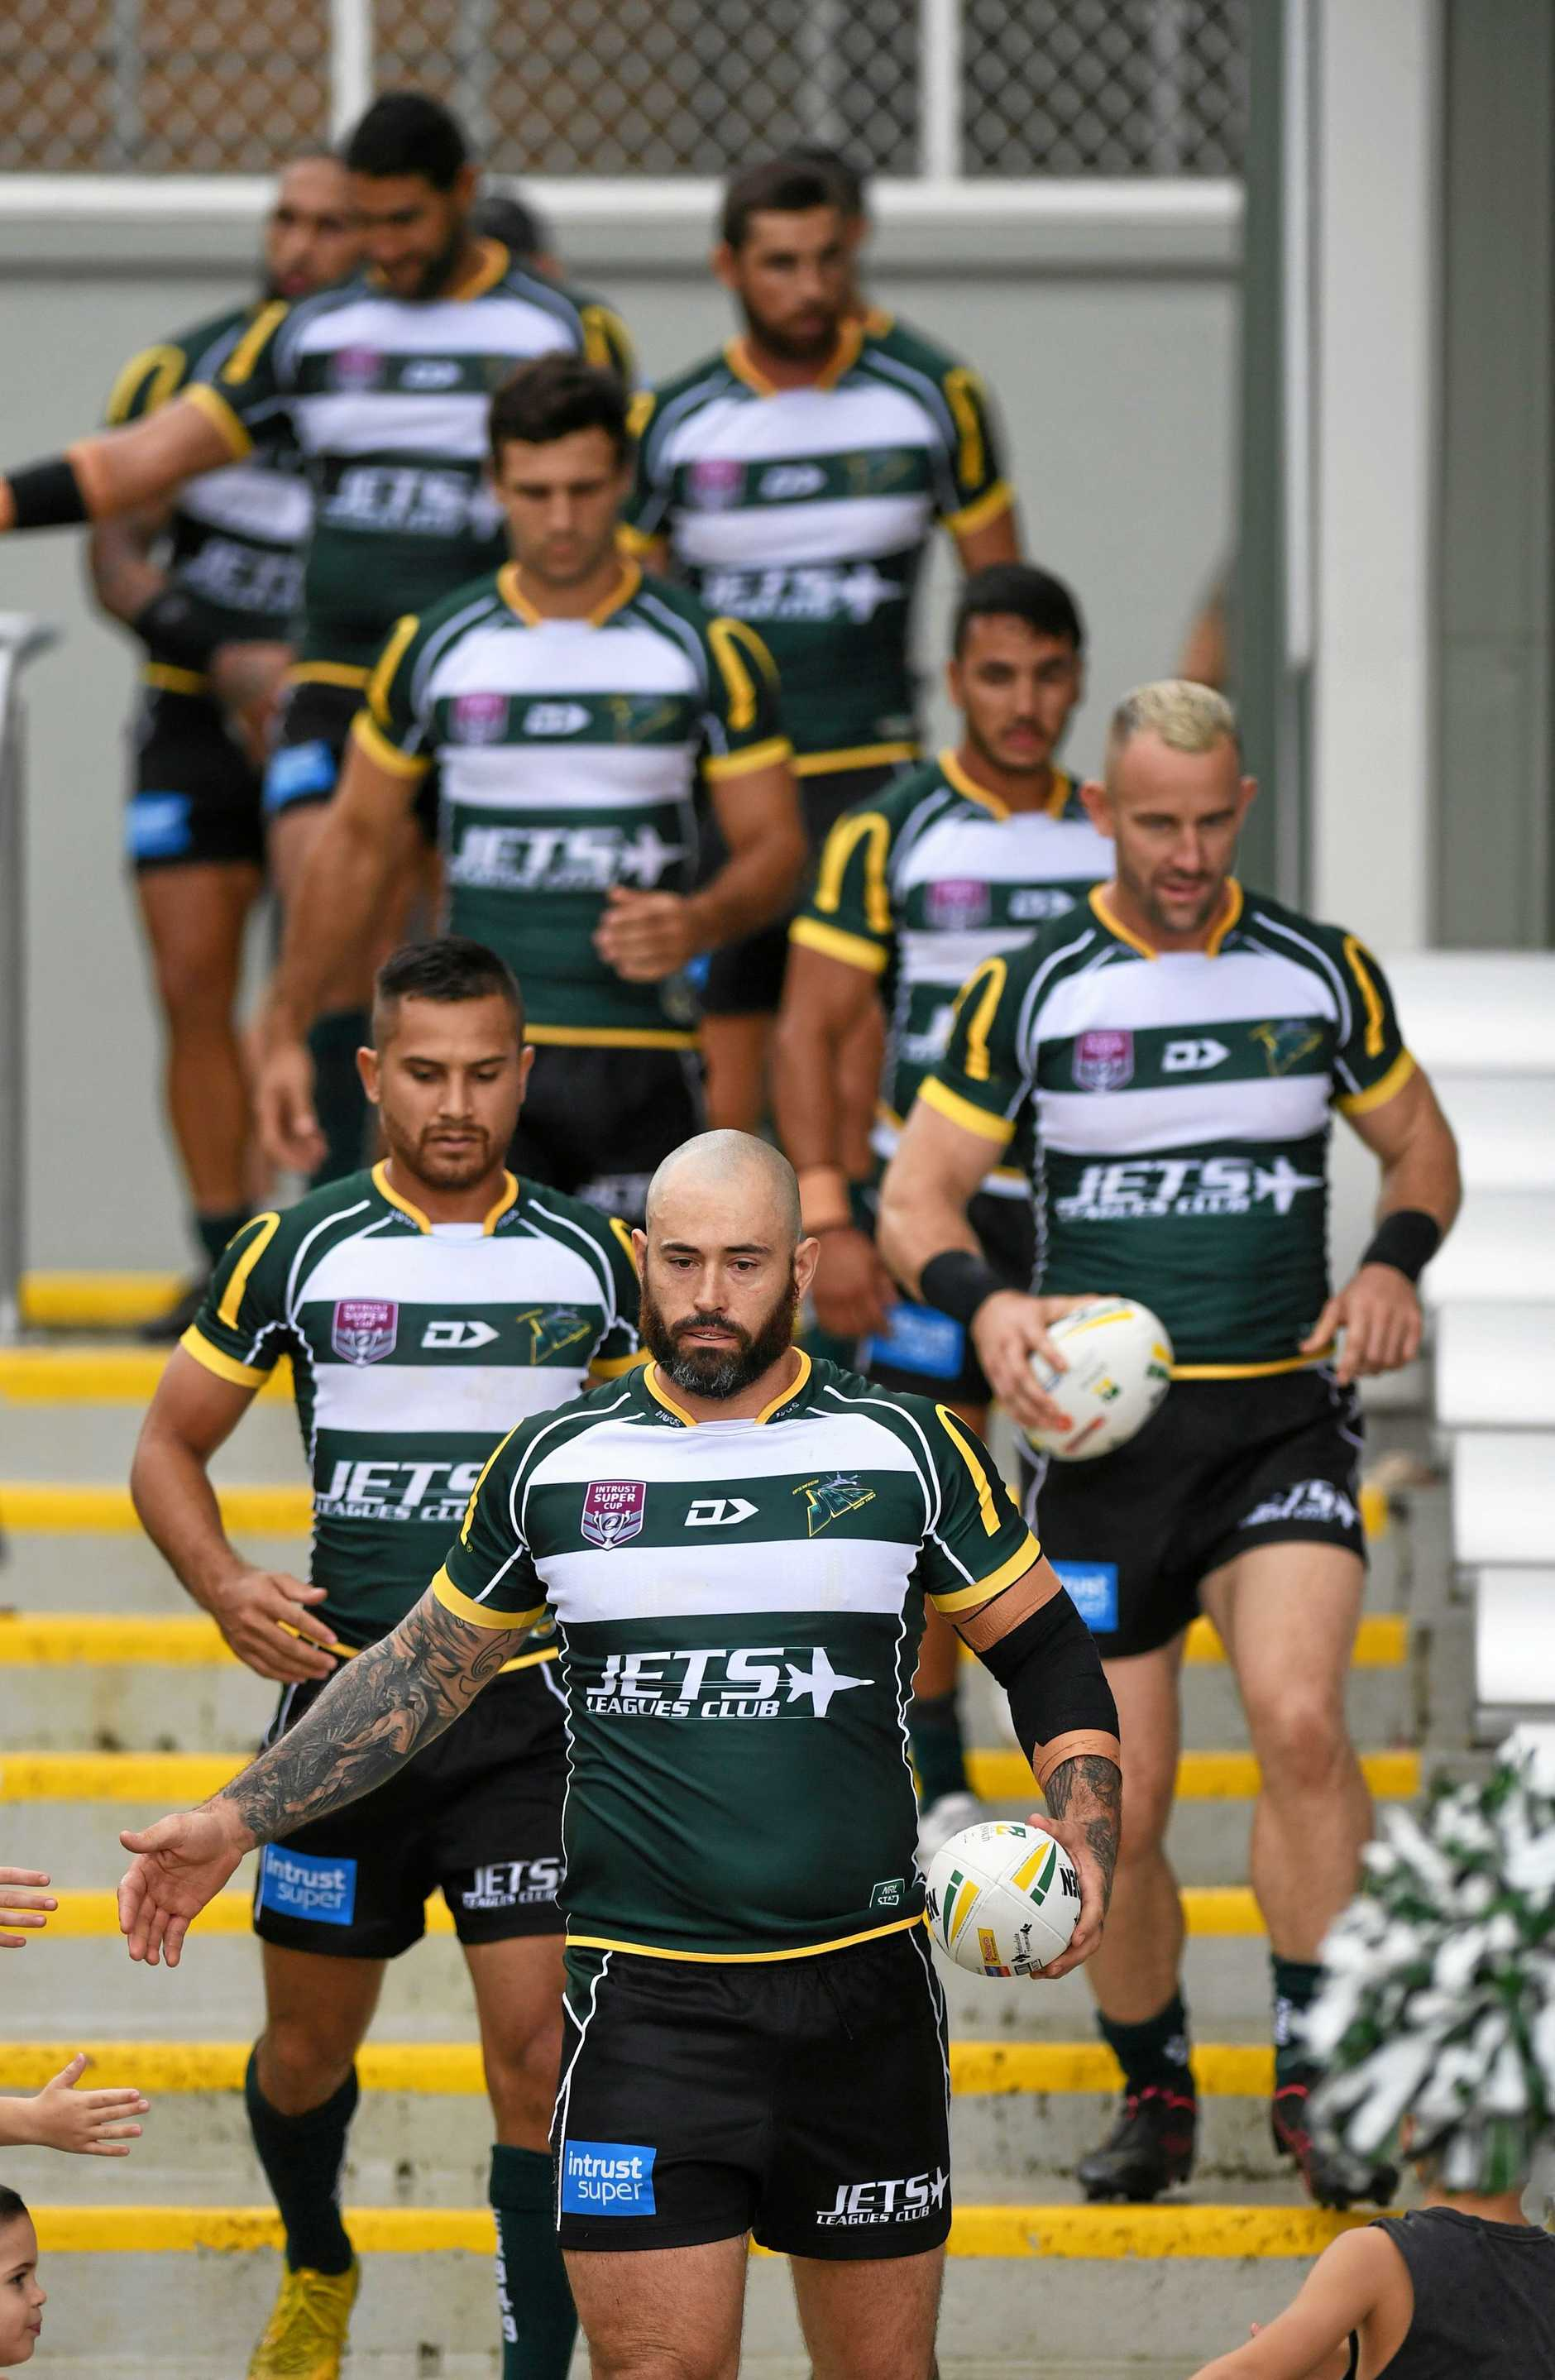 LEADING THE WAY: Ipswich Jets captain Nat Neale.